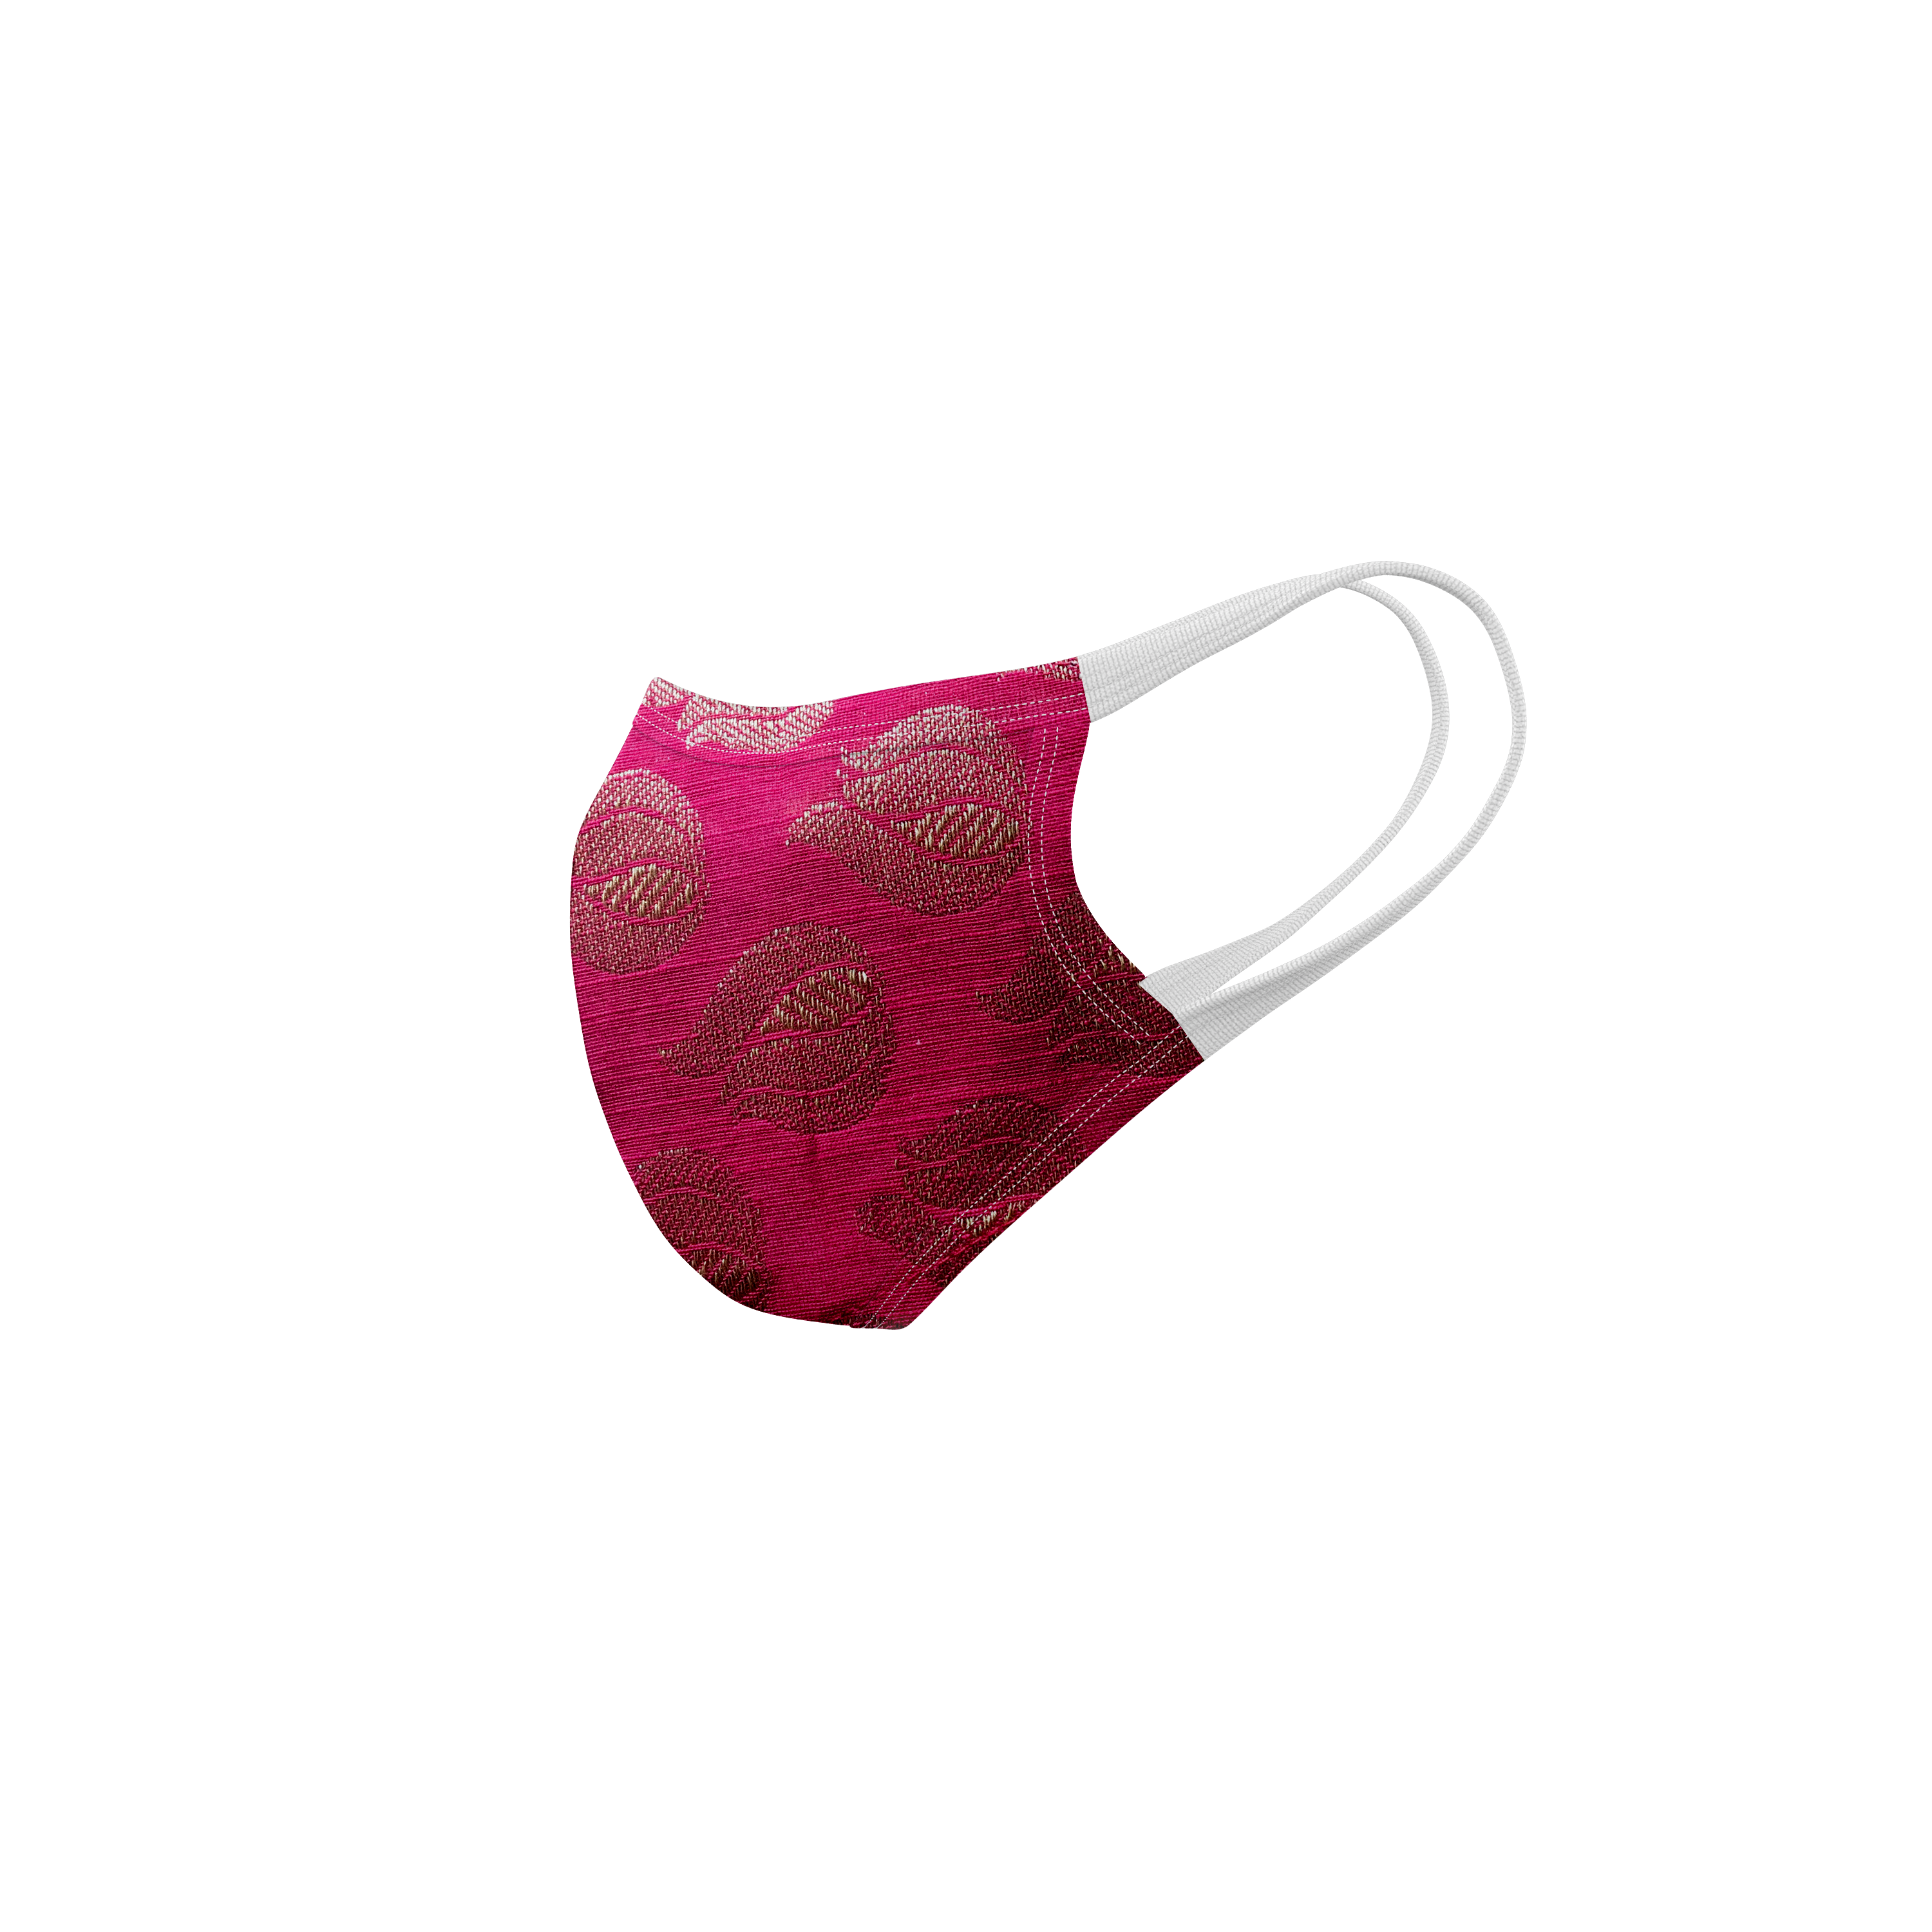 Ethnicity | Ethnicity Red_Pink pack of 2 Women fashion mask